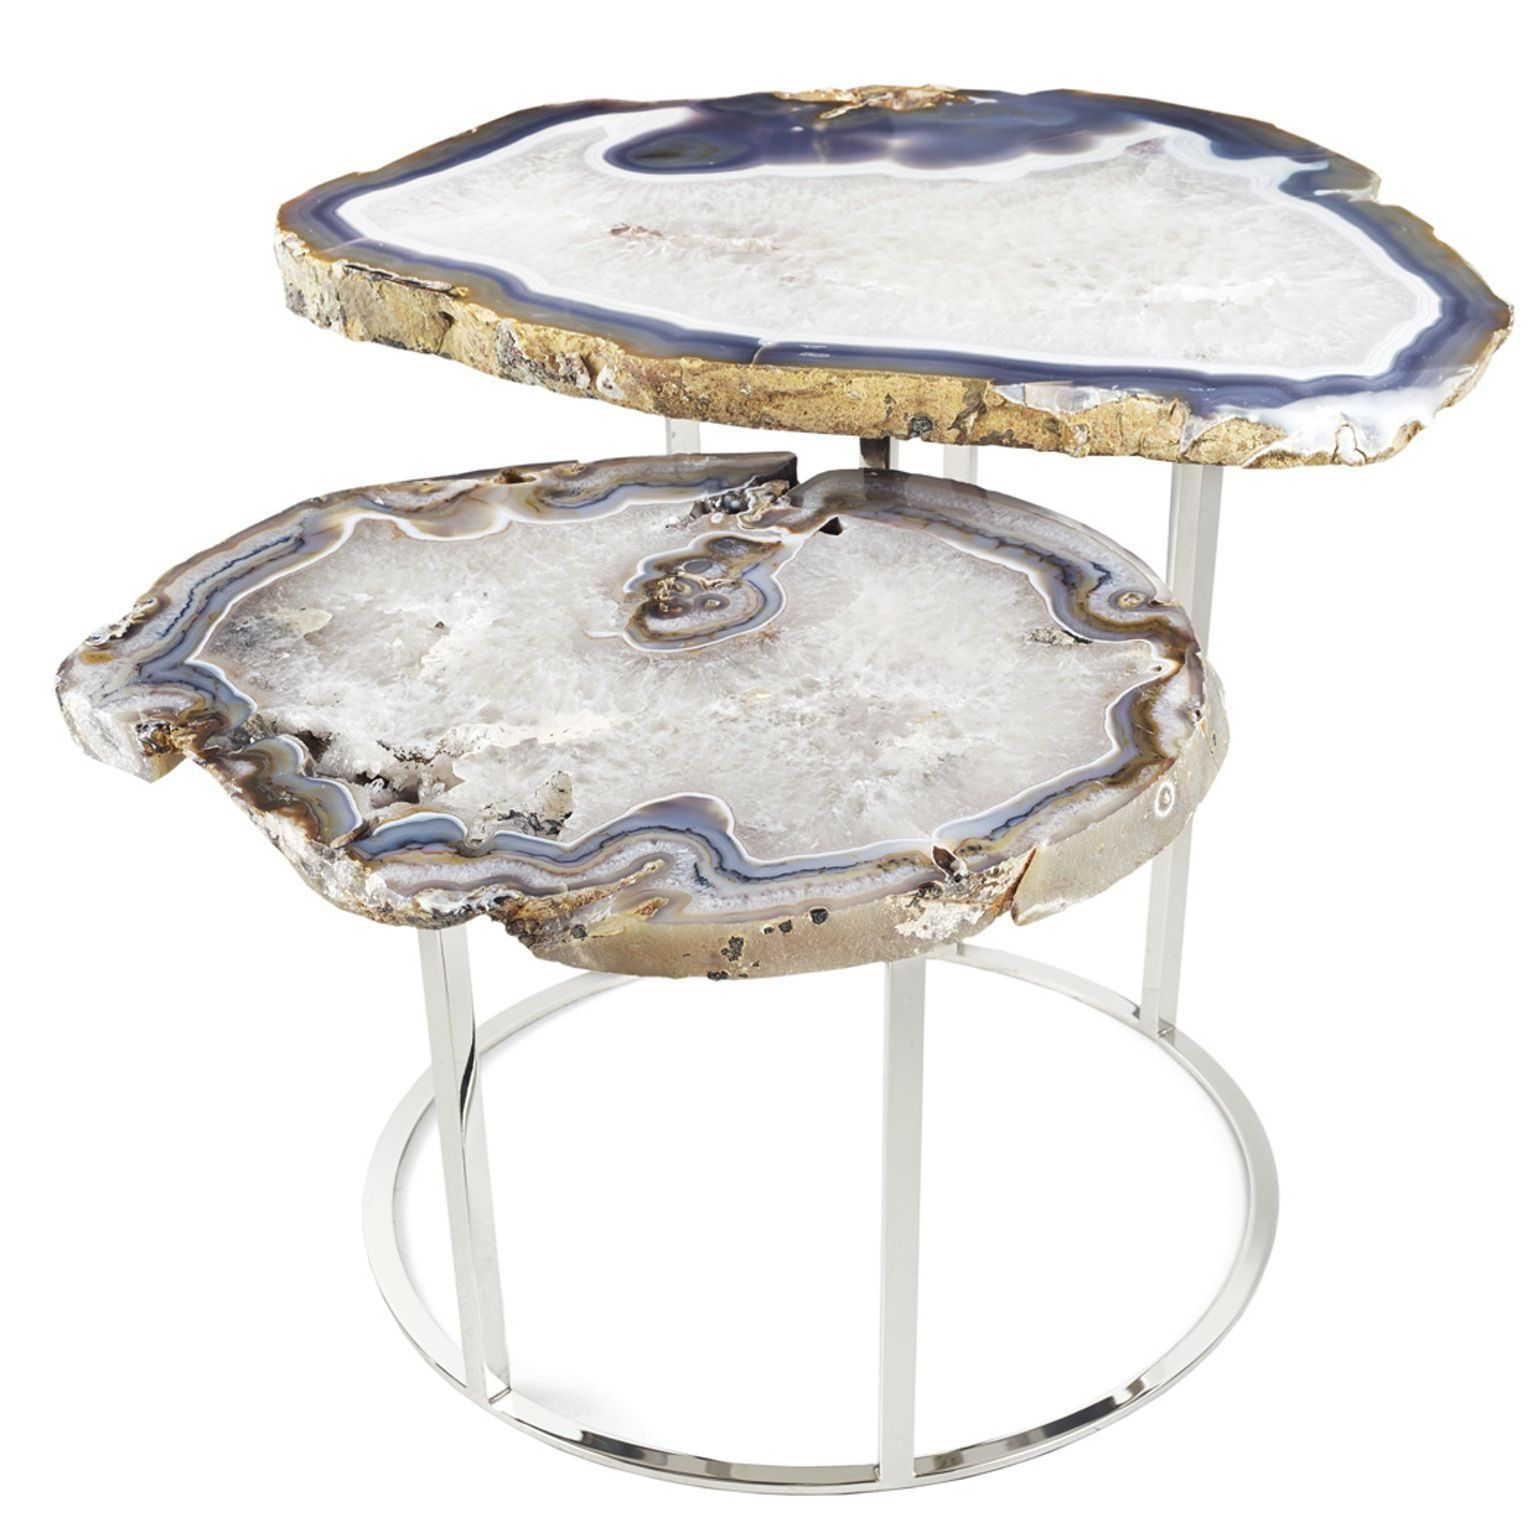 Quinn Two Tier Agate Coffee Table Contemporary Metal Stone Coffee